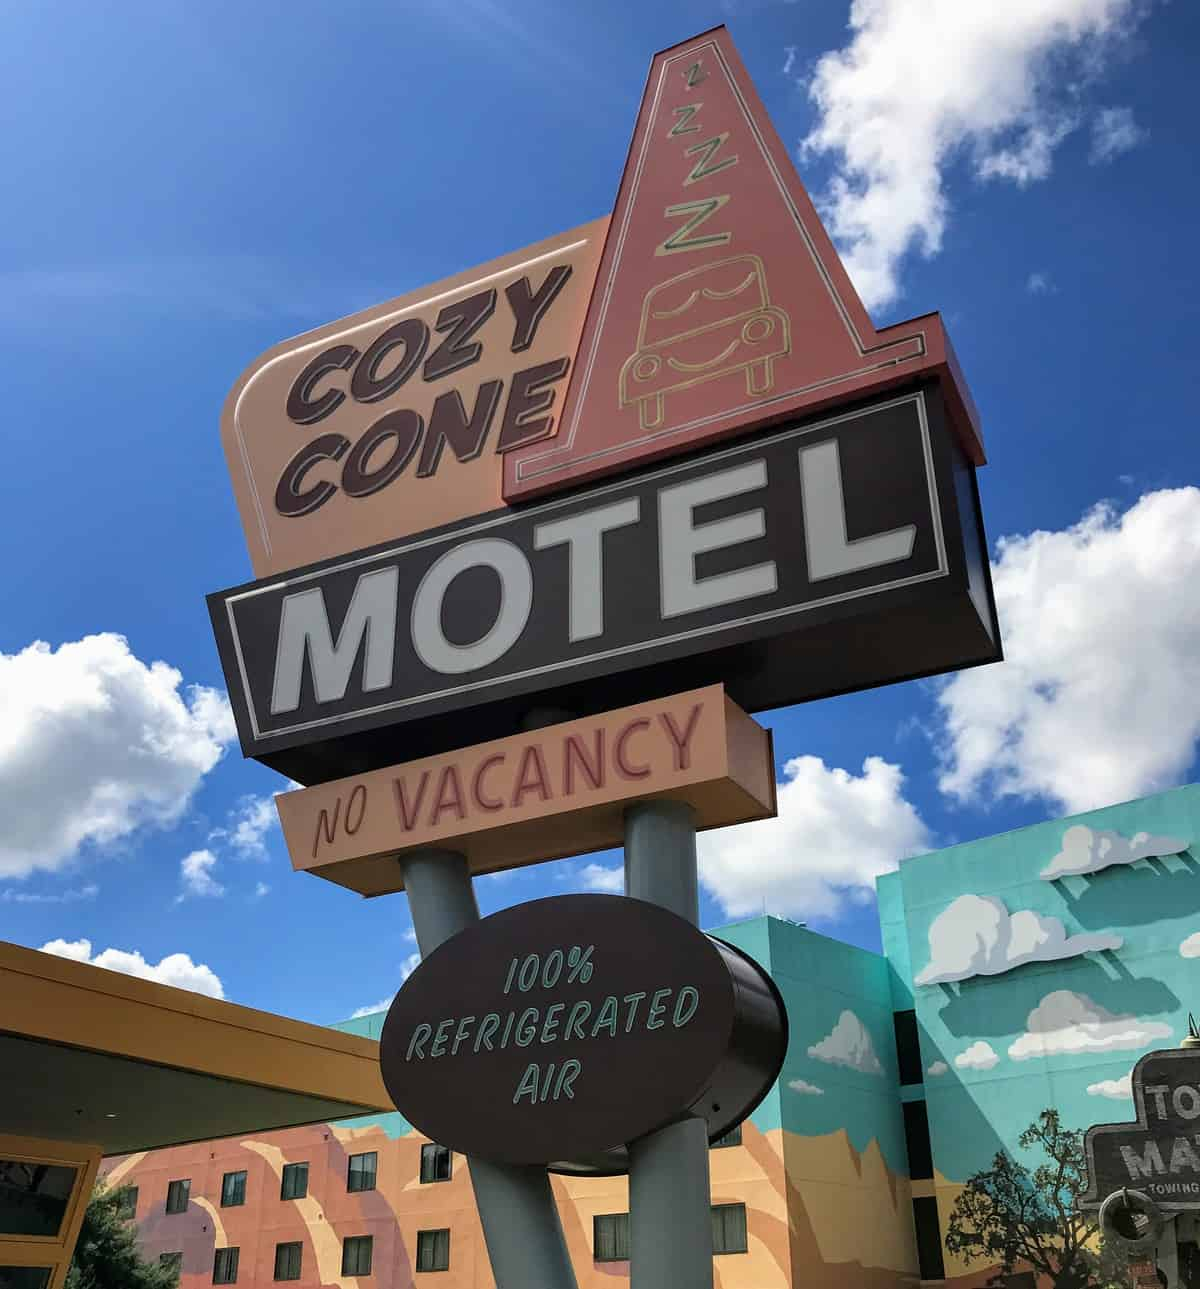 Art of Animation Cozy Cone sign